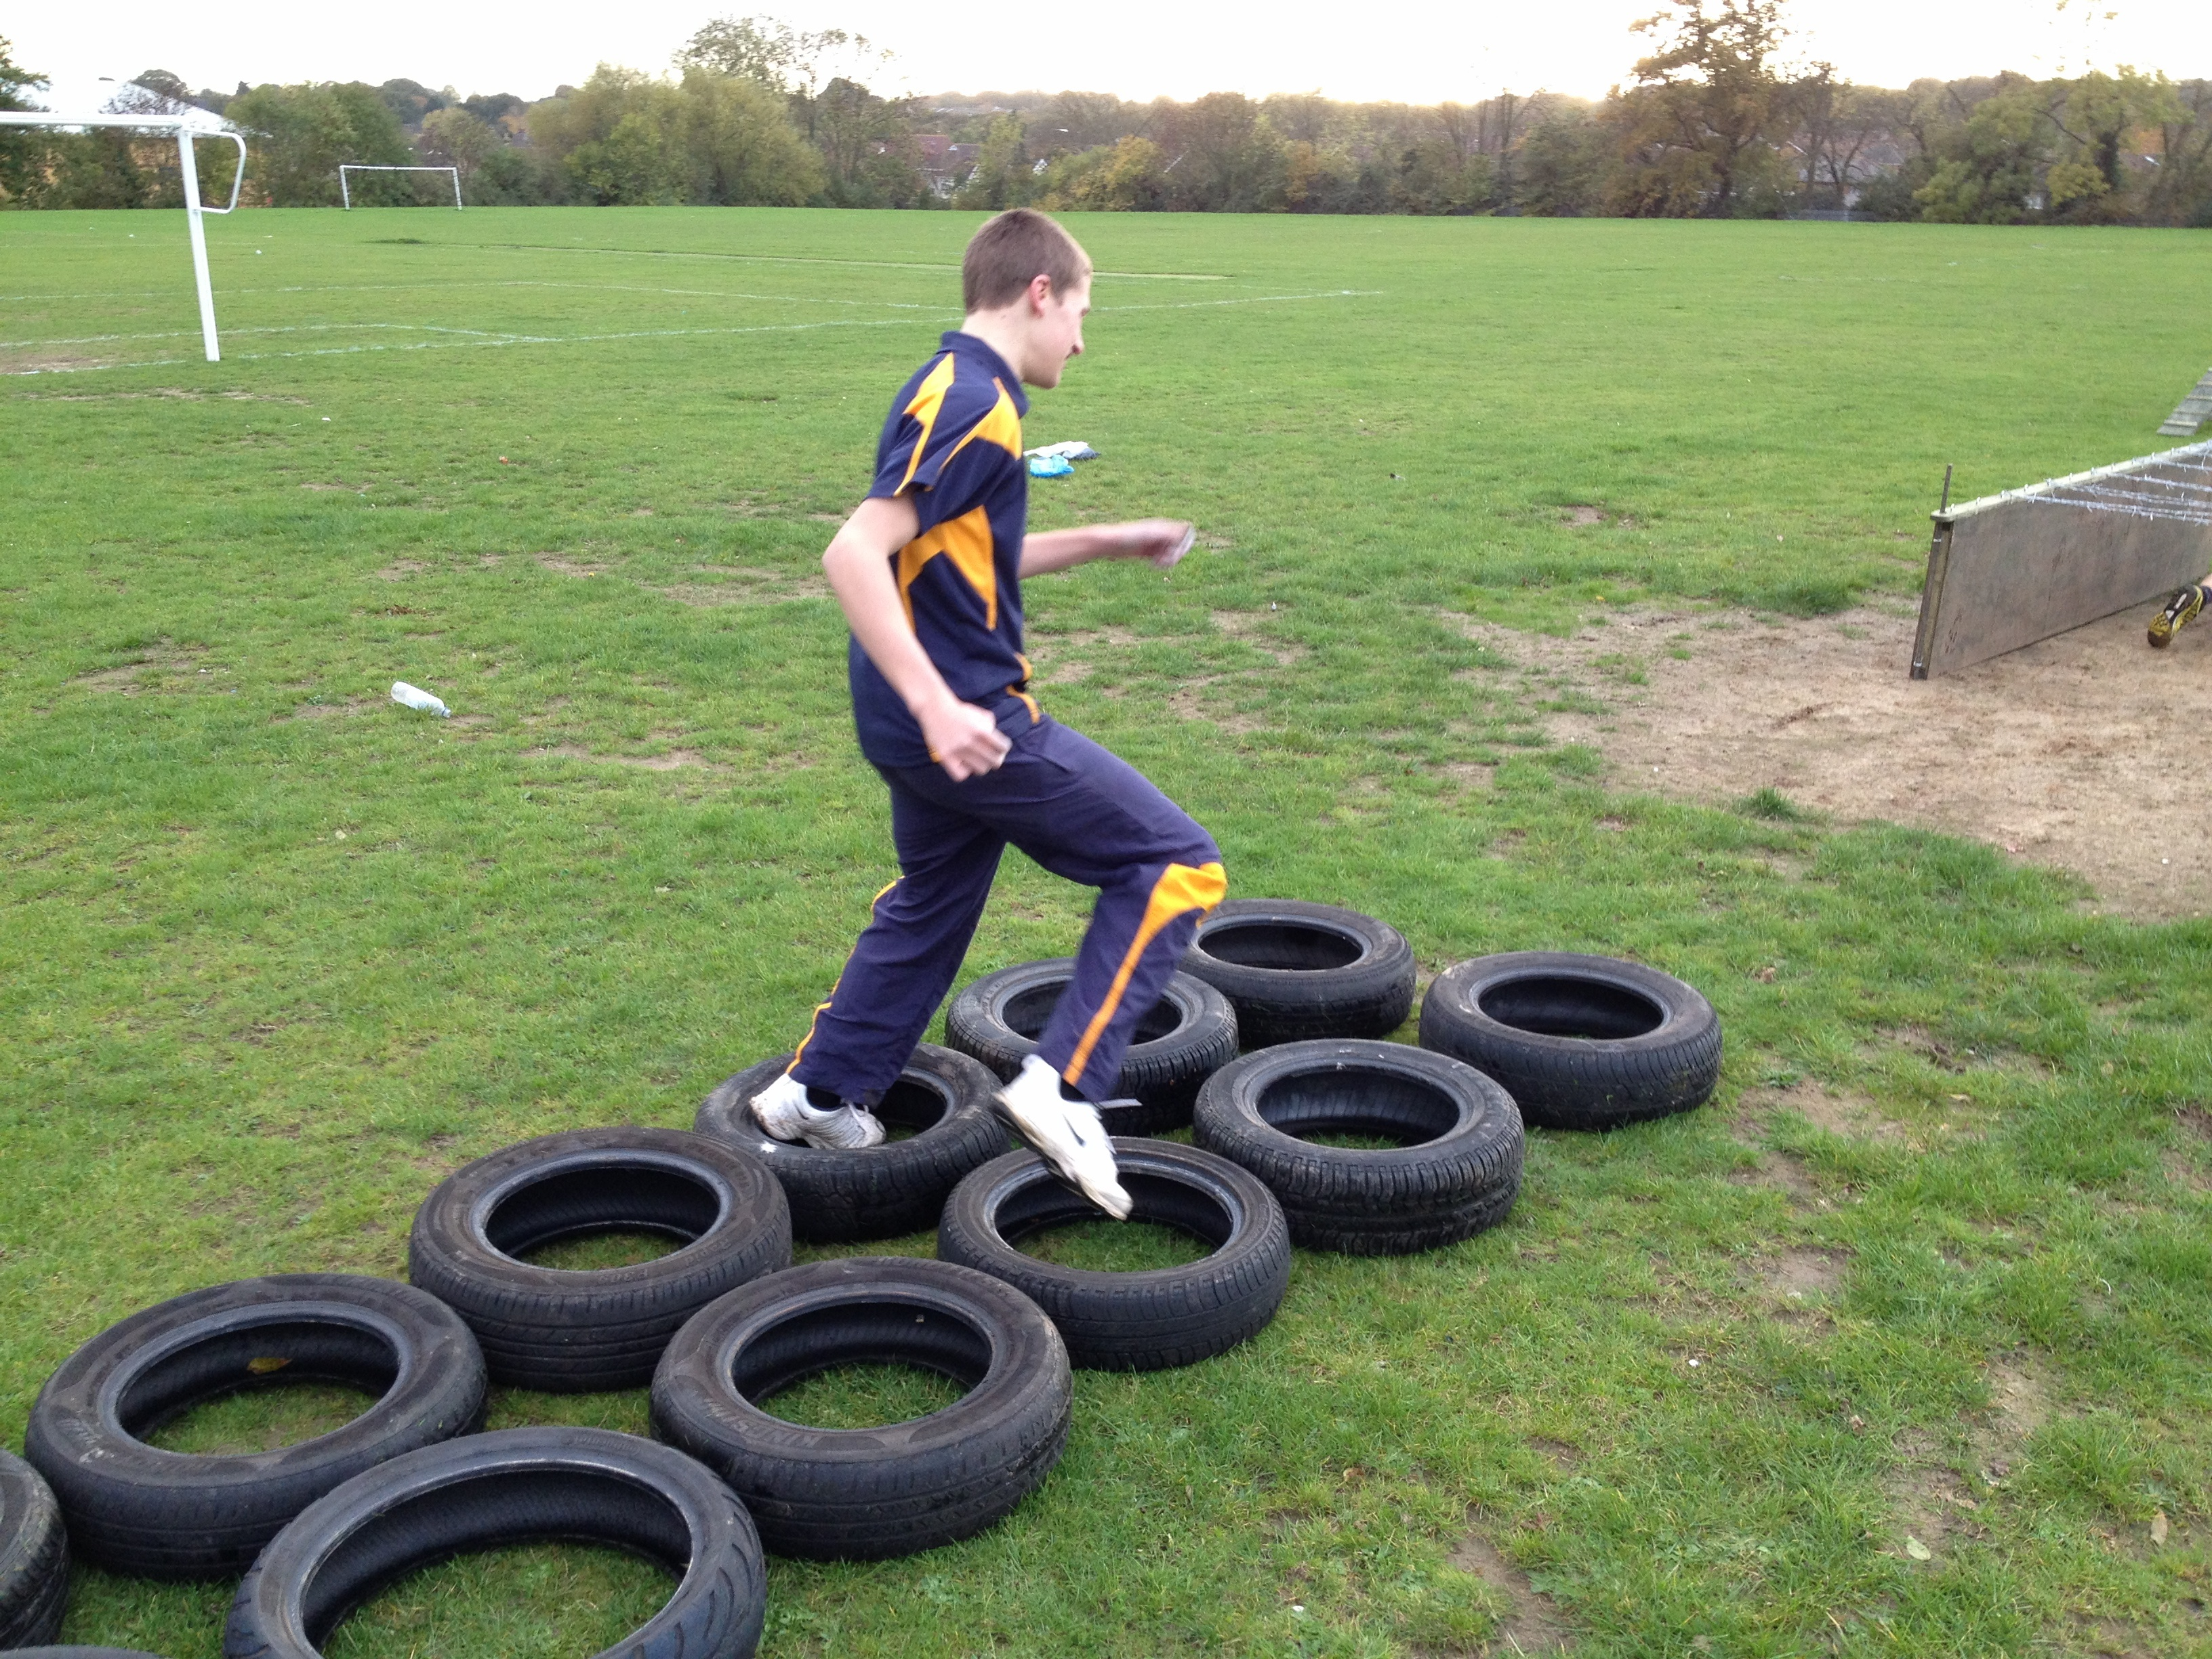 Child Participating In An Assault Course